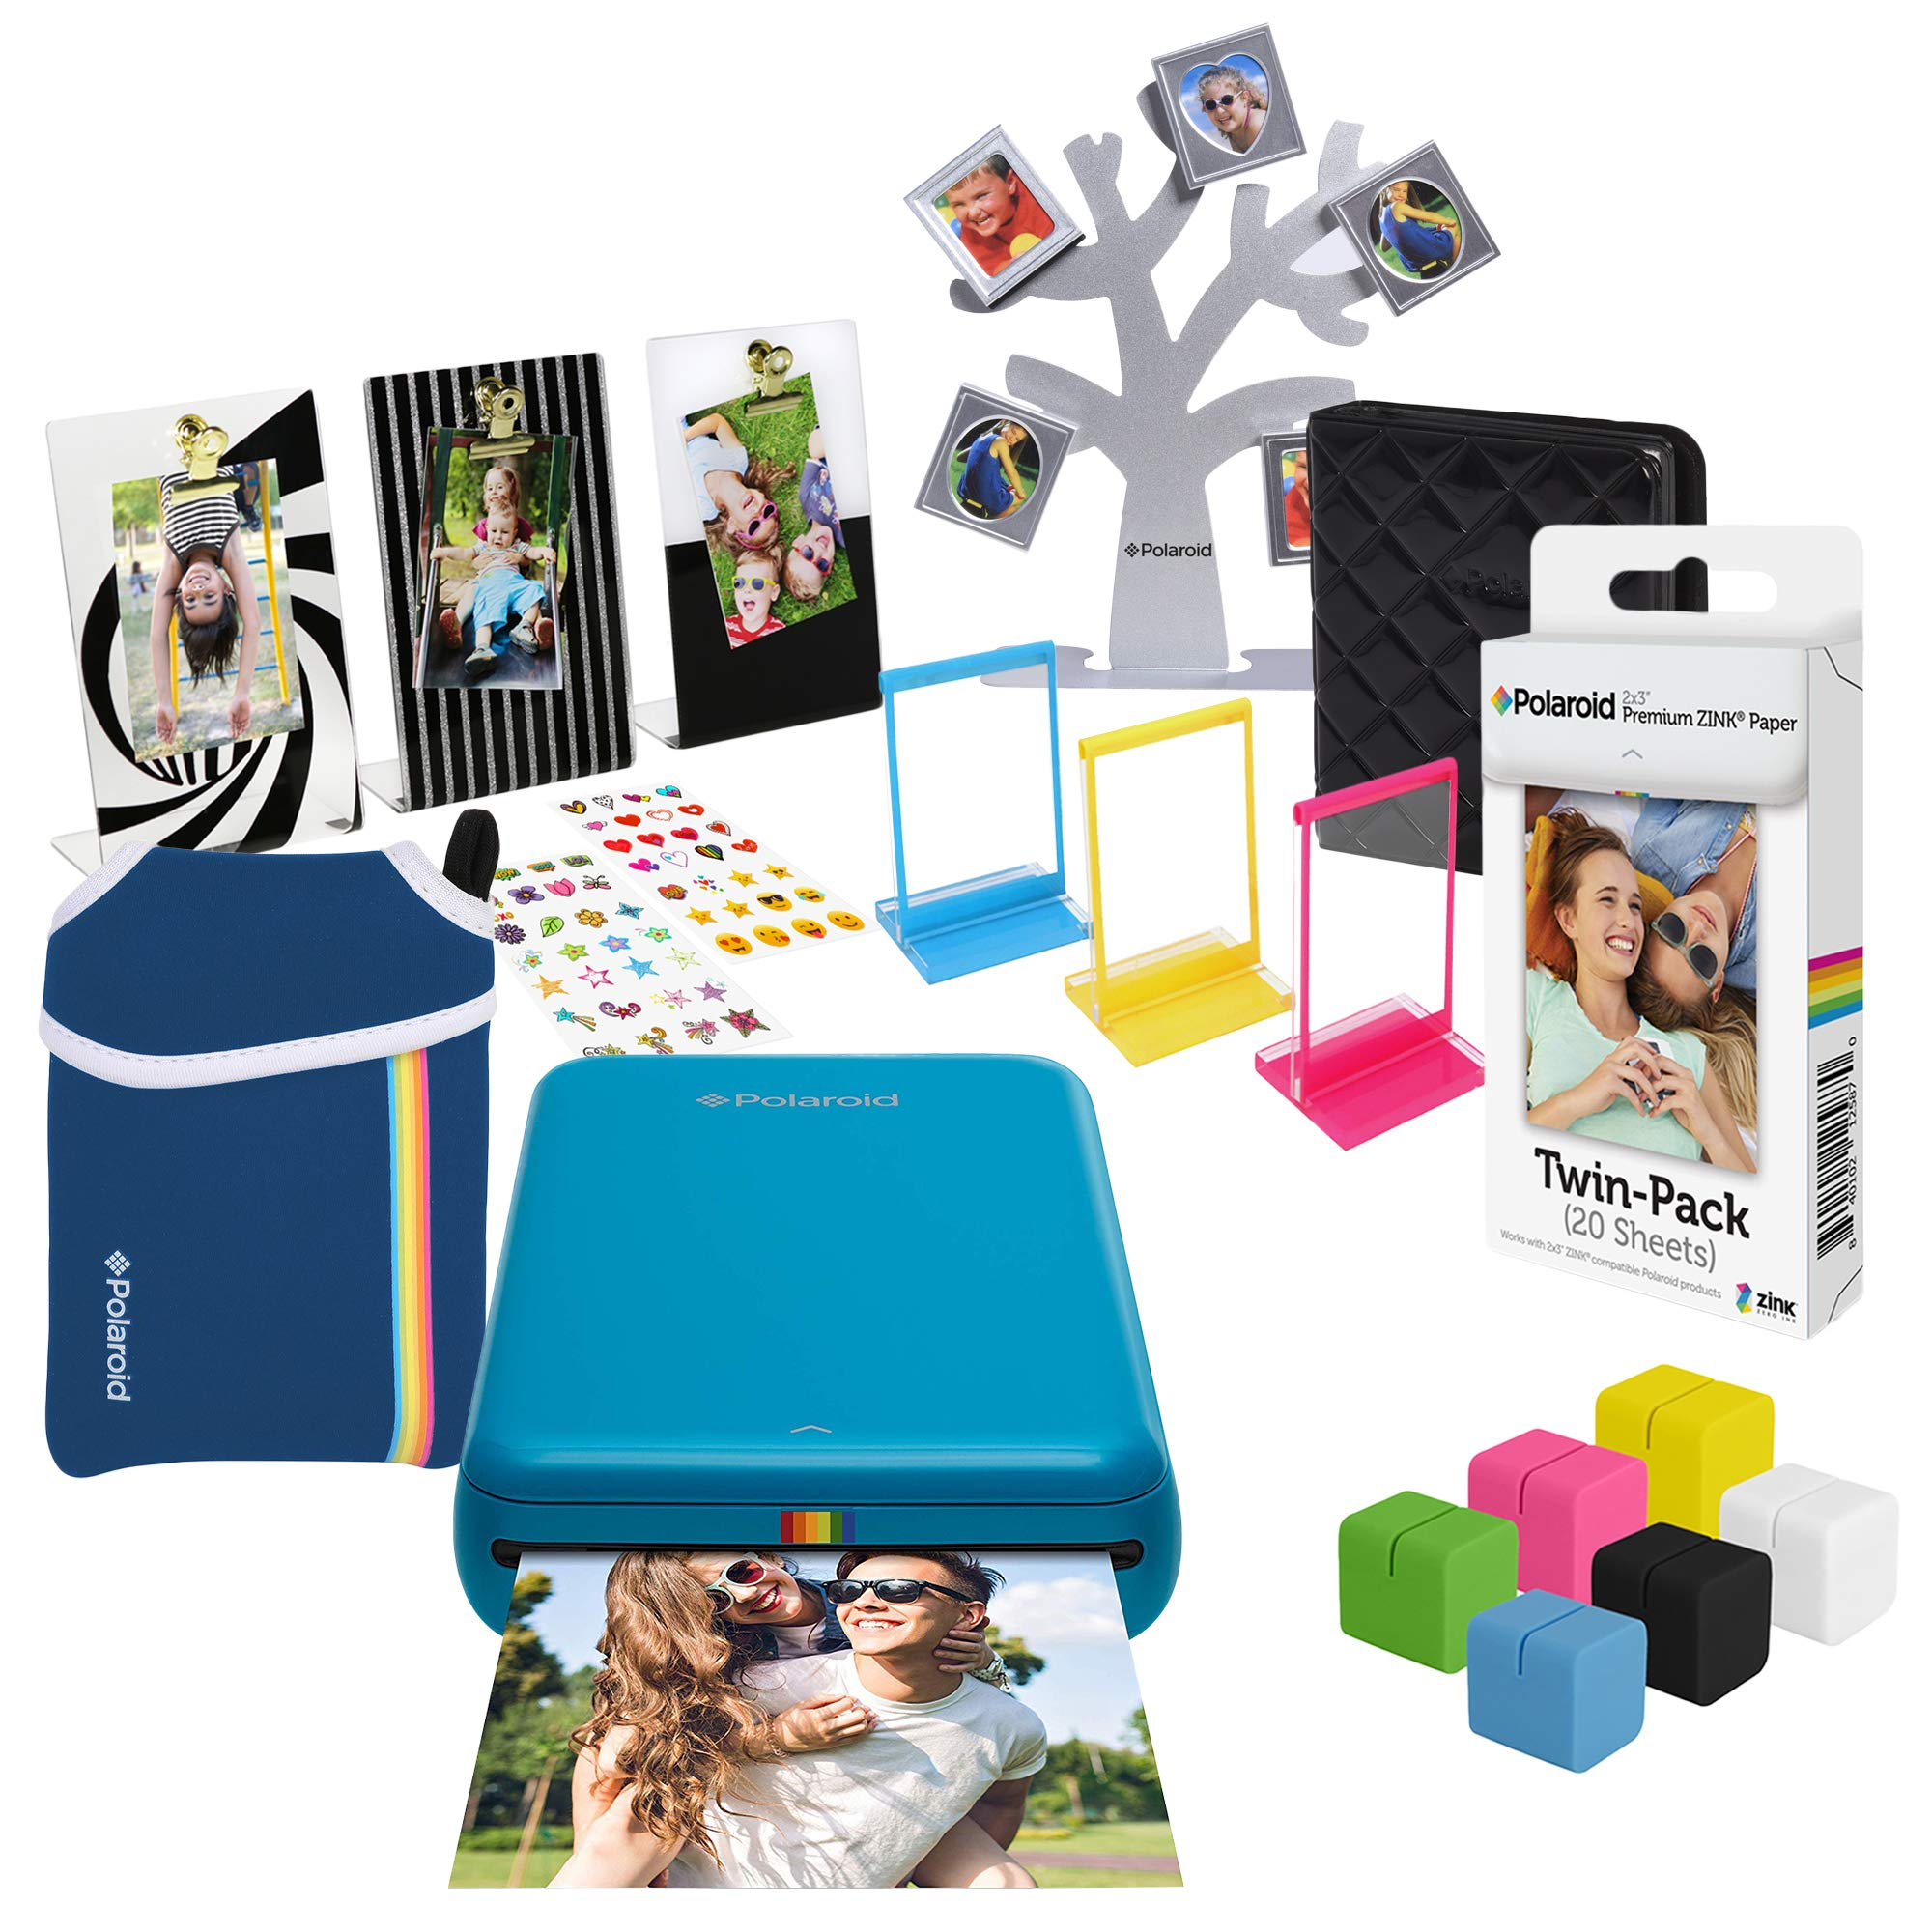 Polaroid Zip Wireless Photo Printer (Blue) Ultimate Gift Bundle by Polaroid